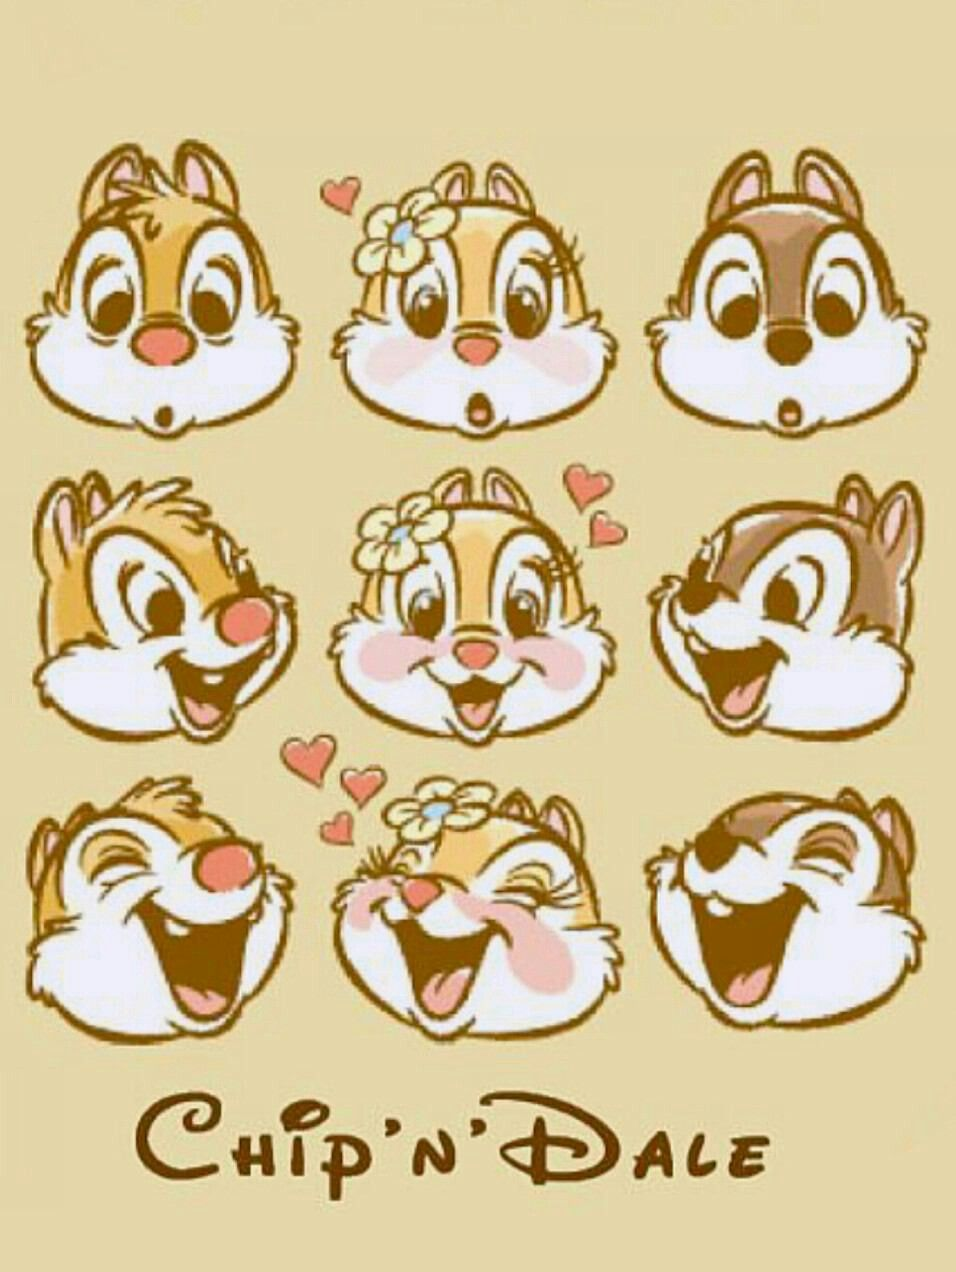 Chip et dale avec clarice disney disney drawings - Chip n dale wallpapers free download ...